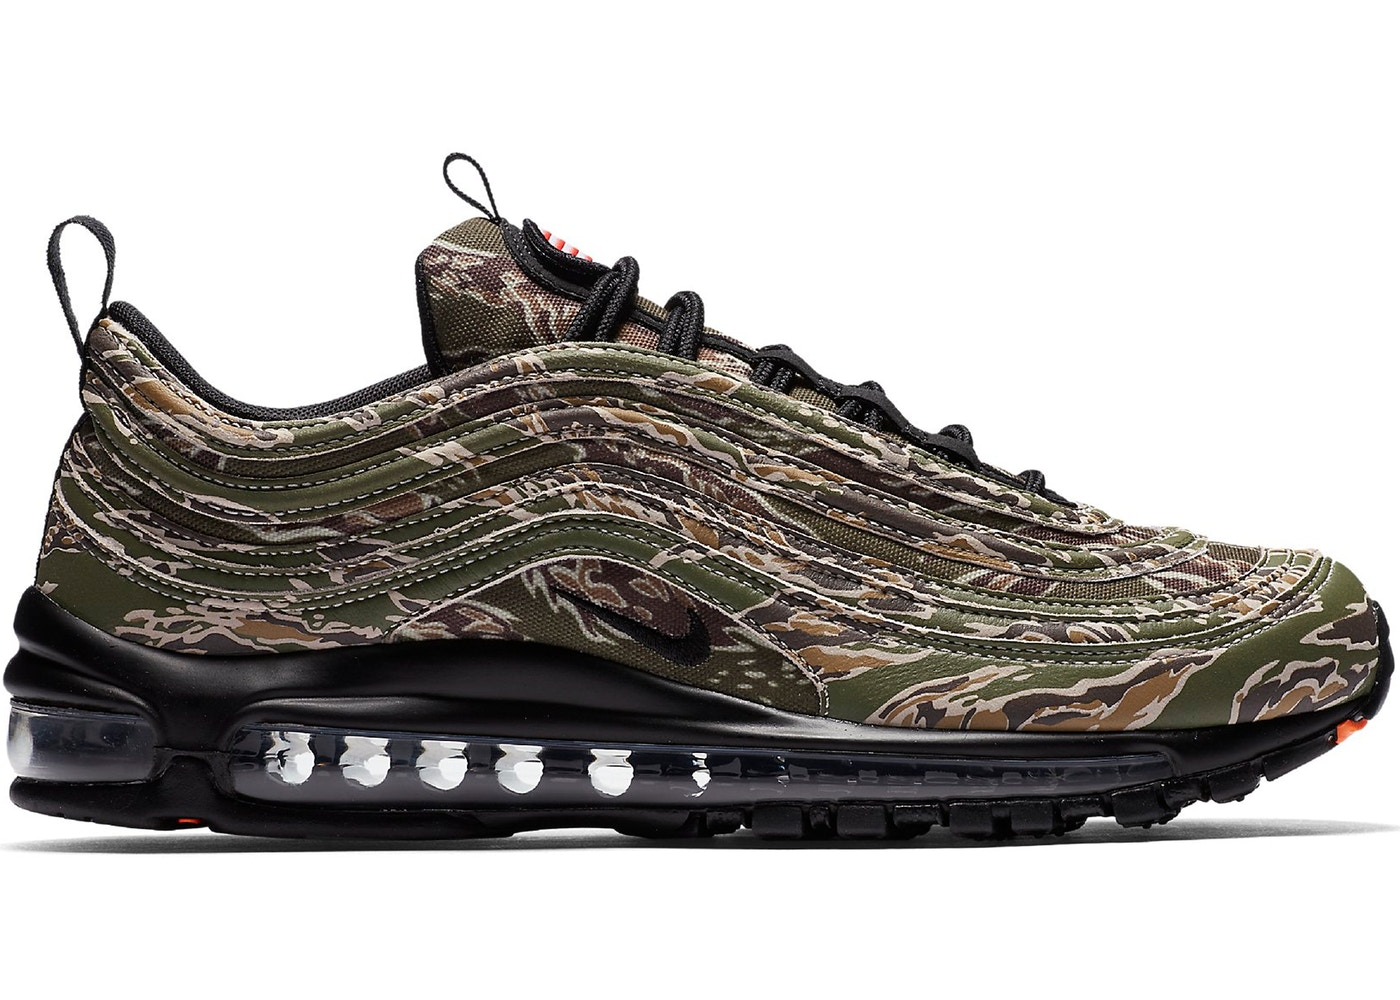 95d02dda46 Sell. or Ask. Size: 10.5. View All Bids. Air Max 97 Country Camo ...